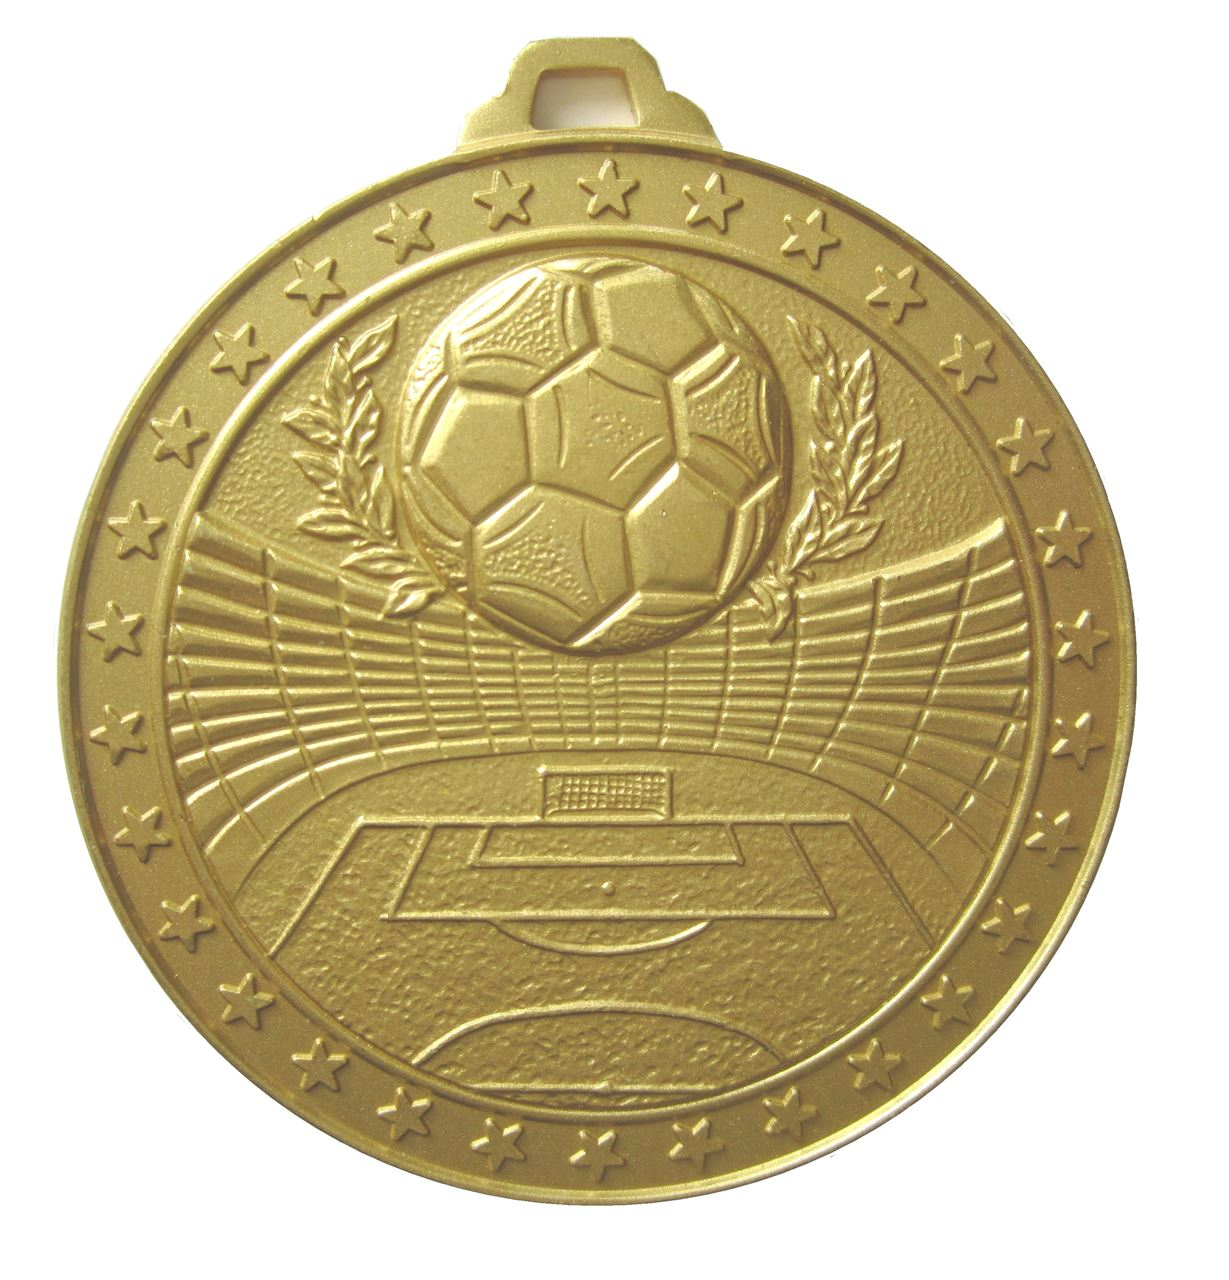 Gold Economy Football Stadium Medal (size: 60mm) - 435E